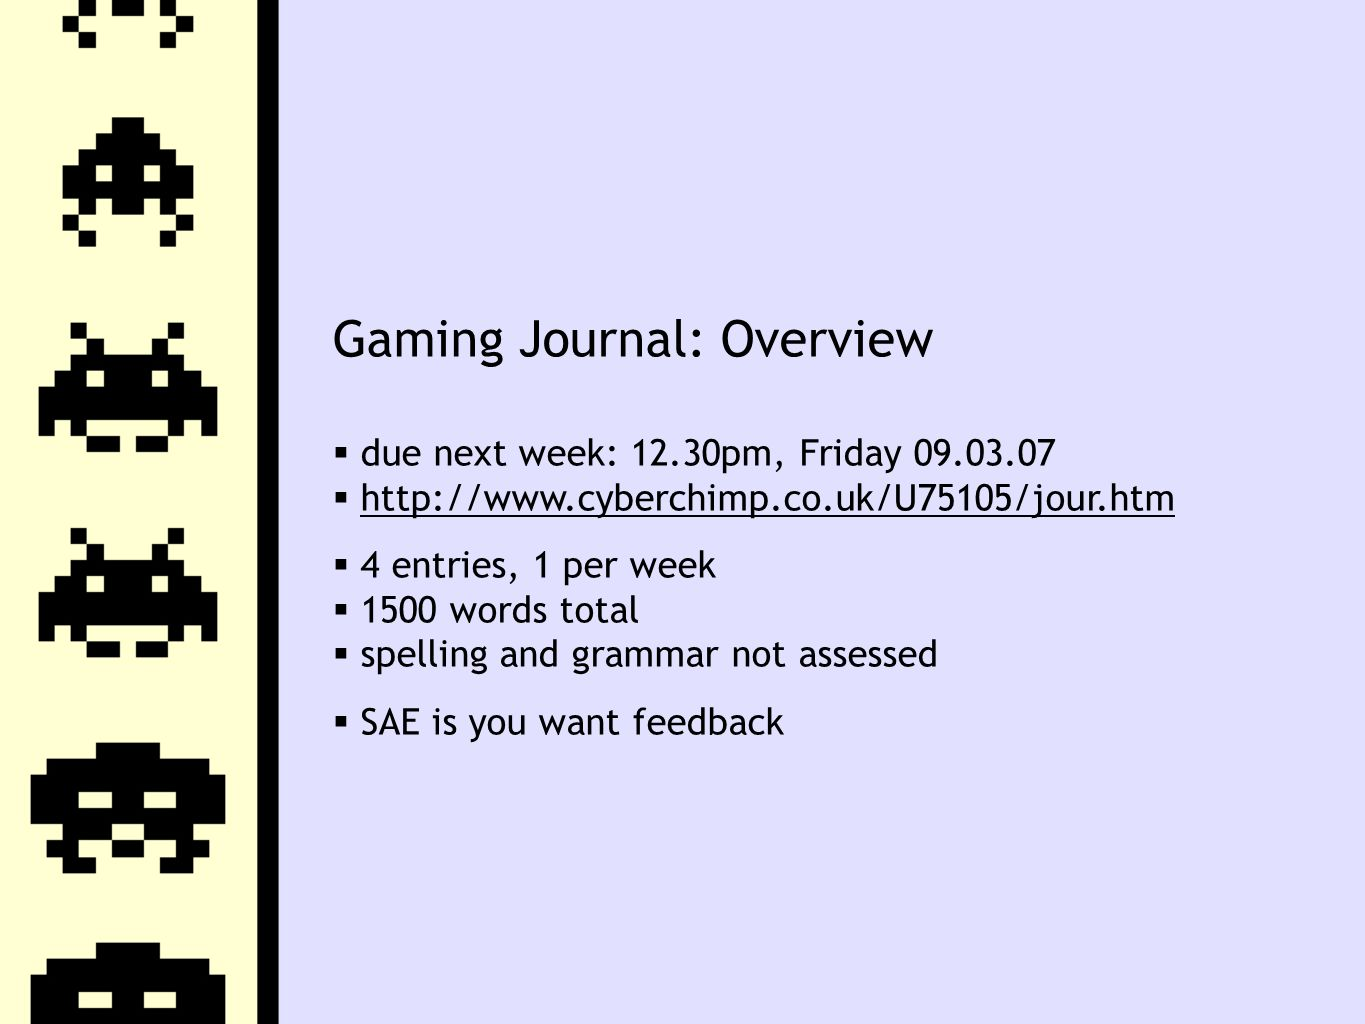 Gaming Journal: Overview  due next week: 12.30pm, Friday 09.03.07  http://www.cyberchimp.co.uk/U75105/jour.htmhttp://www.cyberchimp.co.uk/U75105/jour.htm  4 entries, 1 per week  1500 words total  spelling and grammar not assessed  SAE is you want feedback